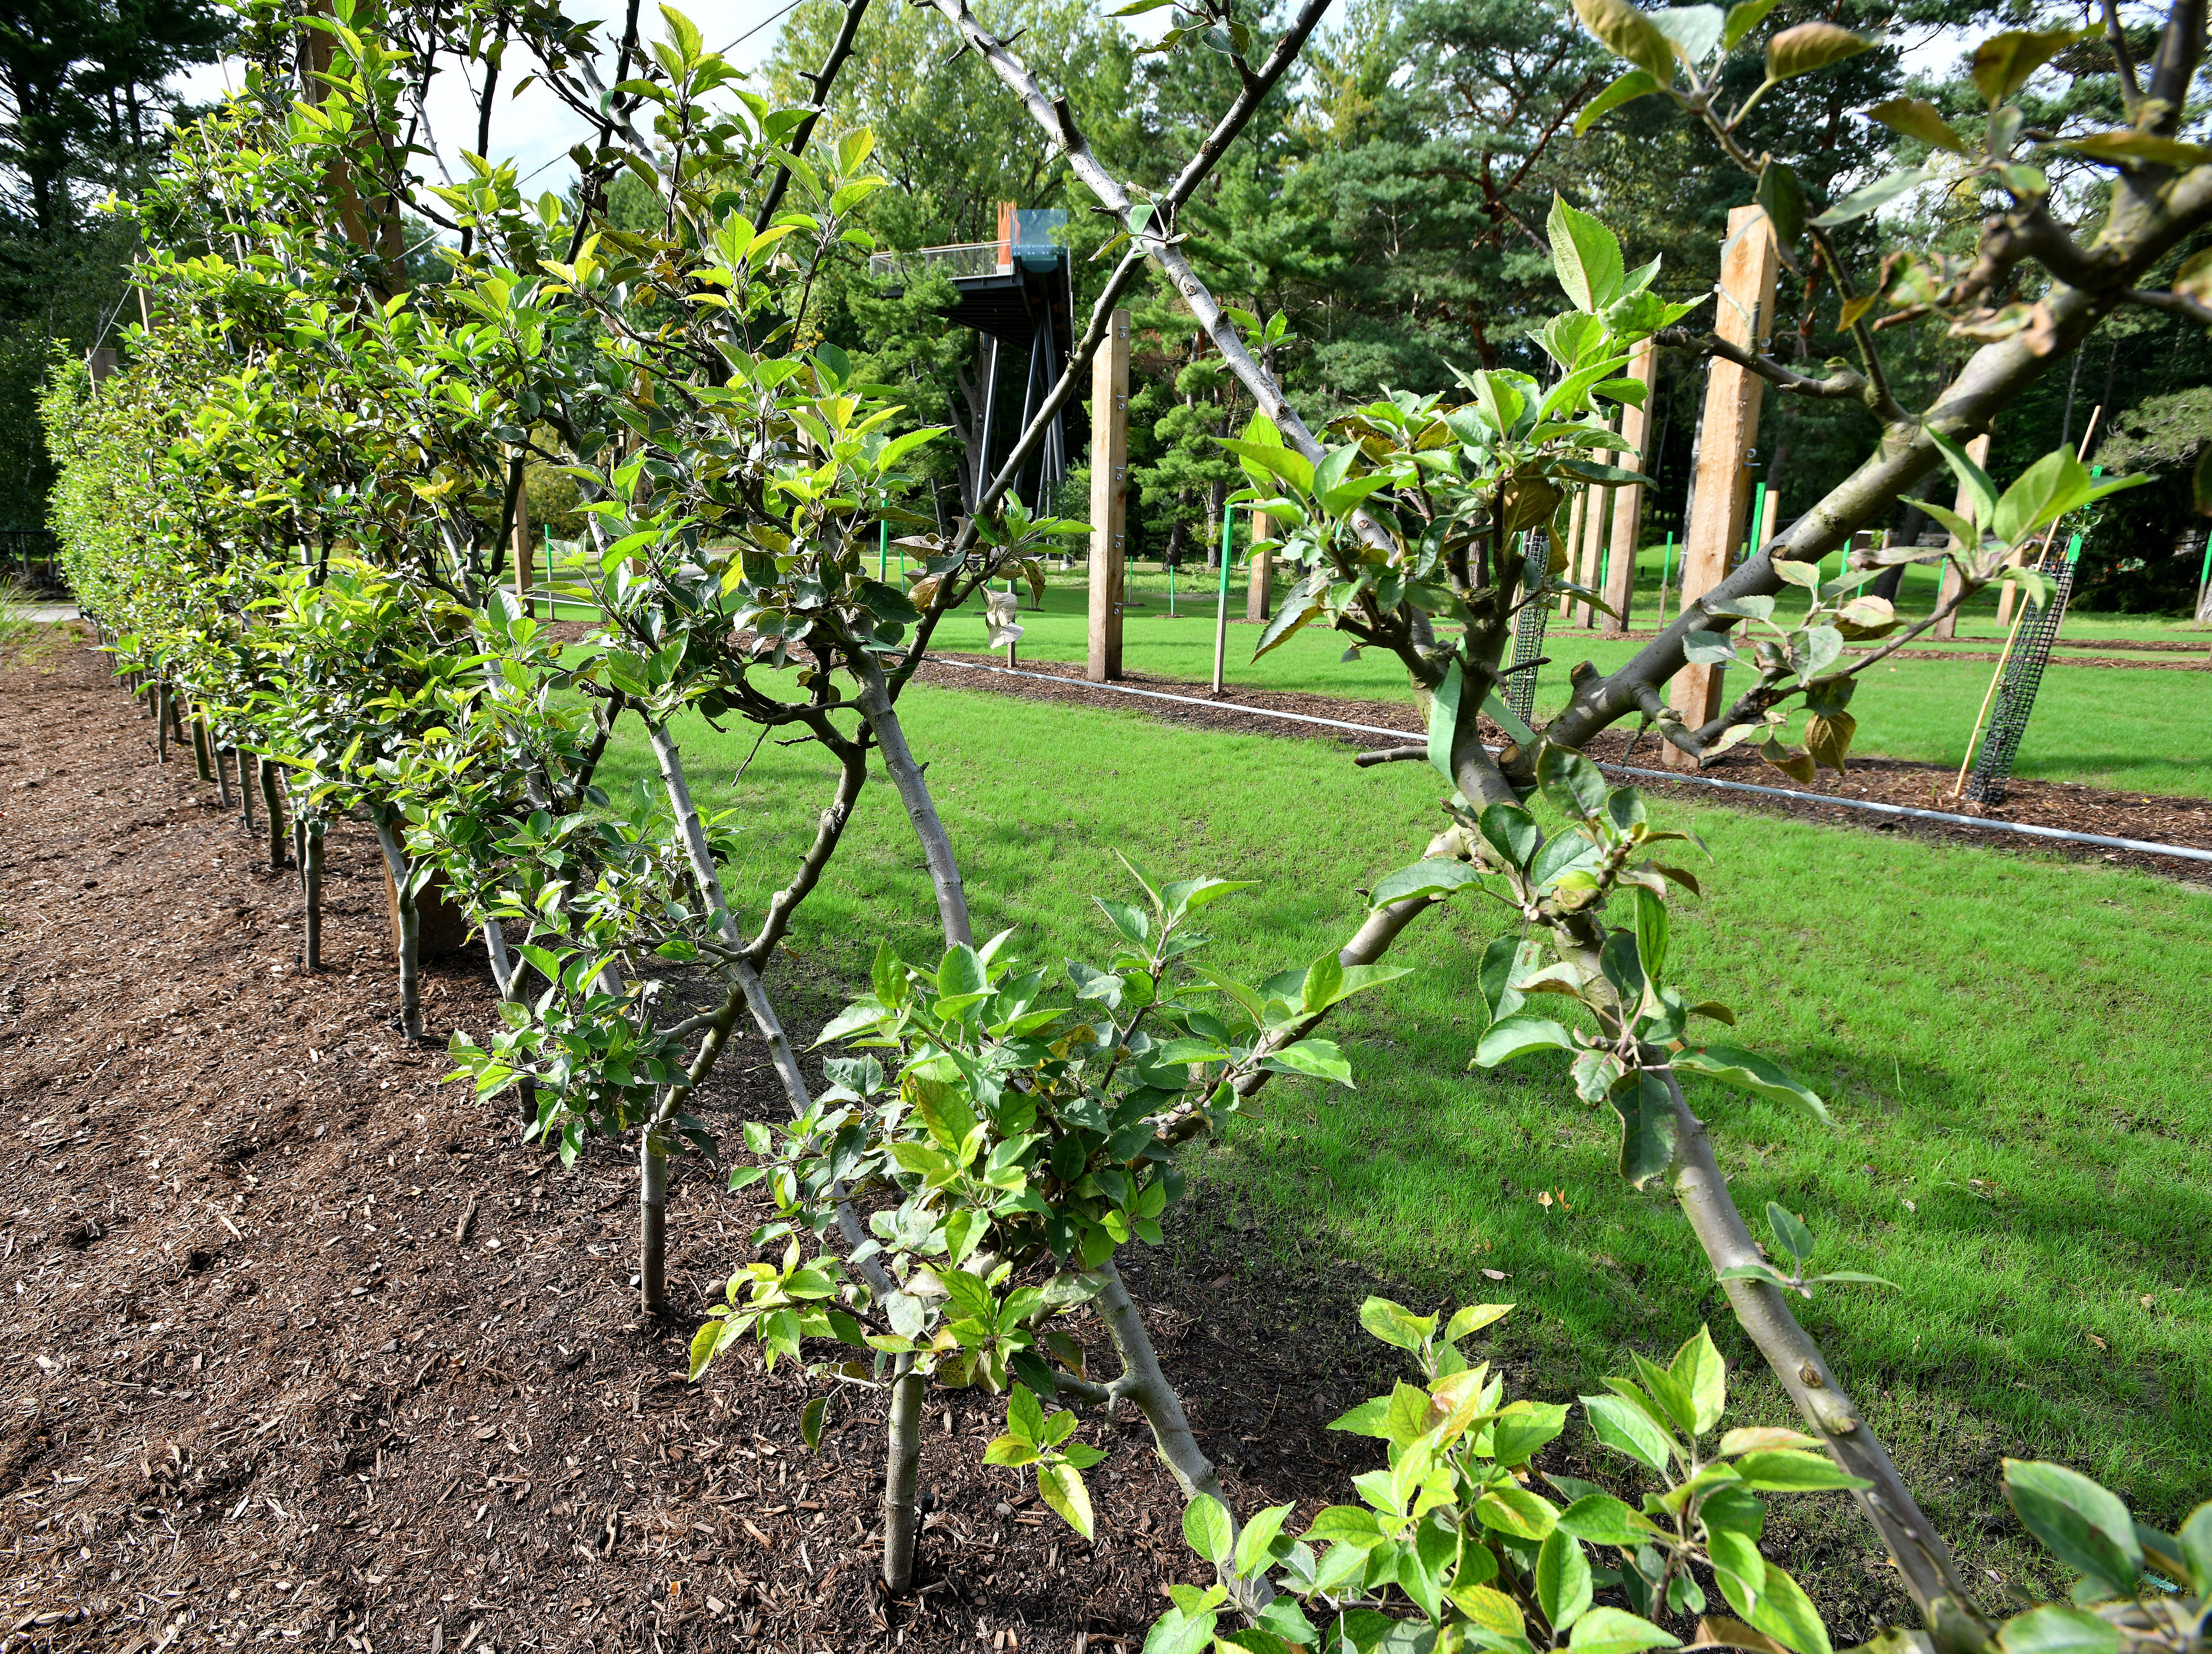 """Apple trees woven into an """"espalier"""" form a fence along the drive at the entrance to Whiting Forest. Espalier is the horticultural art of weaving woody plants like apple trees into shapes, usually attached to a frame for support."""